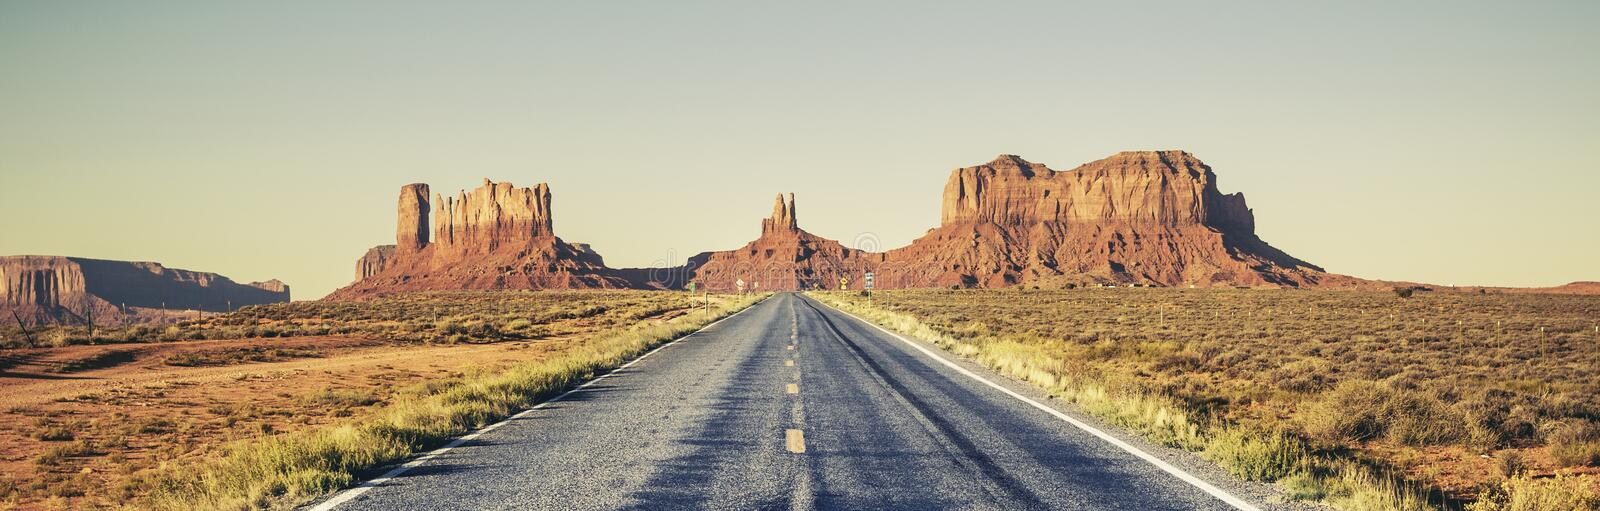 Long road royalty free stock images